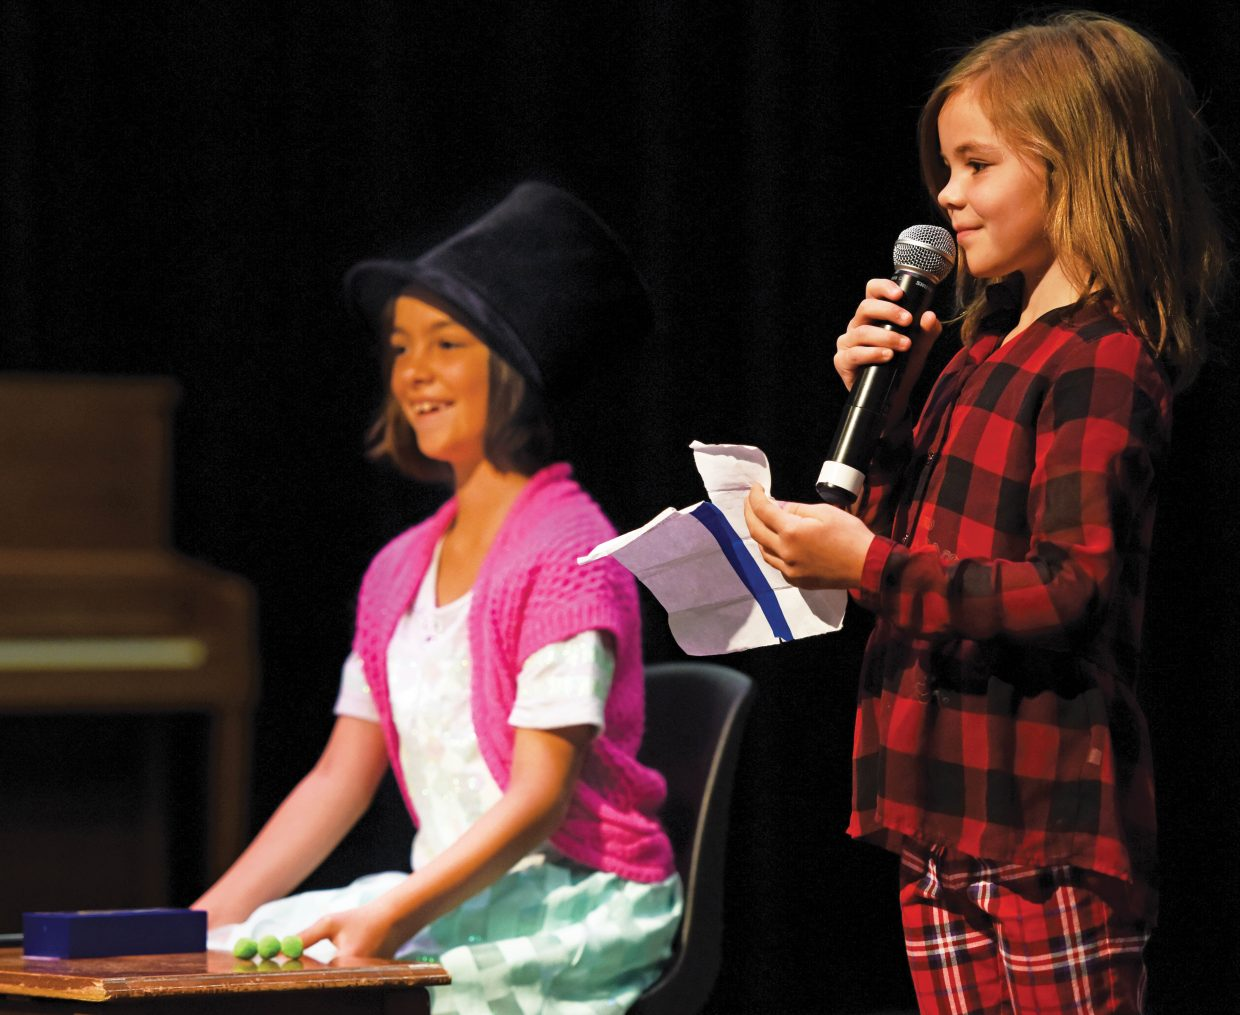 Maile Buschmann, a first-grader at Soda Creek Elementary School, performs with her older sister Kealia, a third-grader, during the school's end-of-year talent show Wednesday morning. It was the final day of class for the school this year.